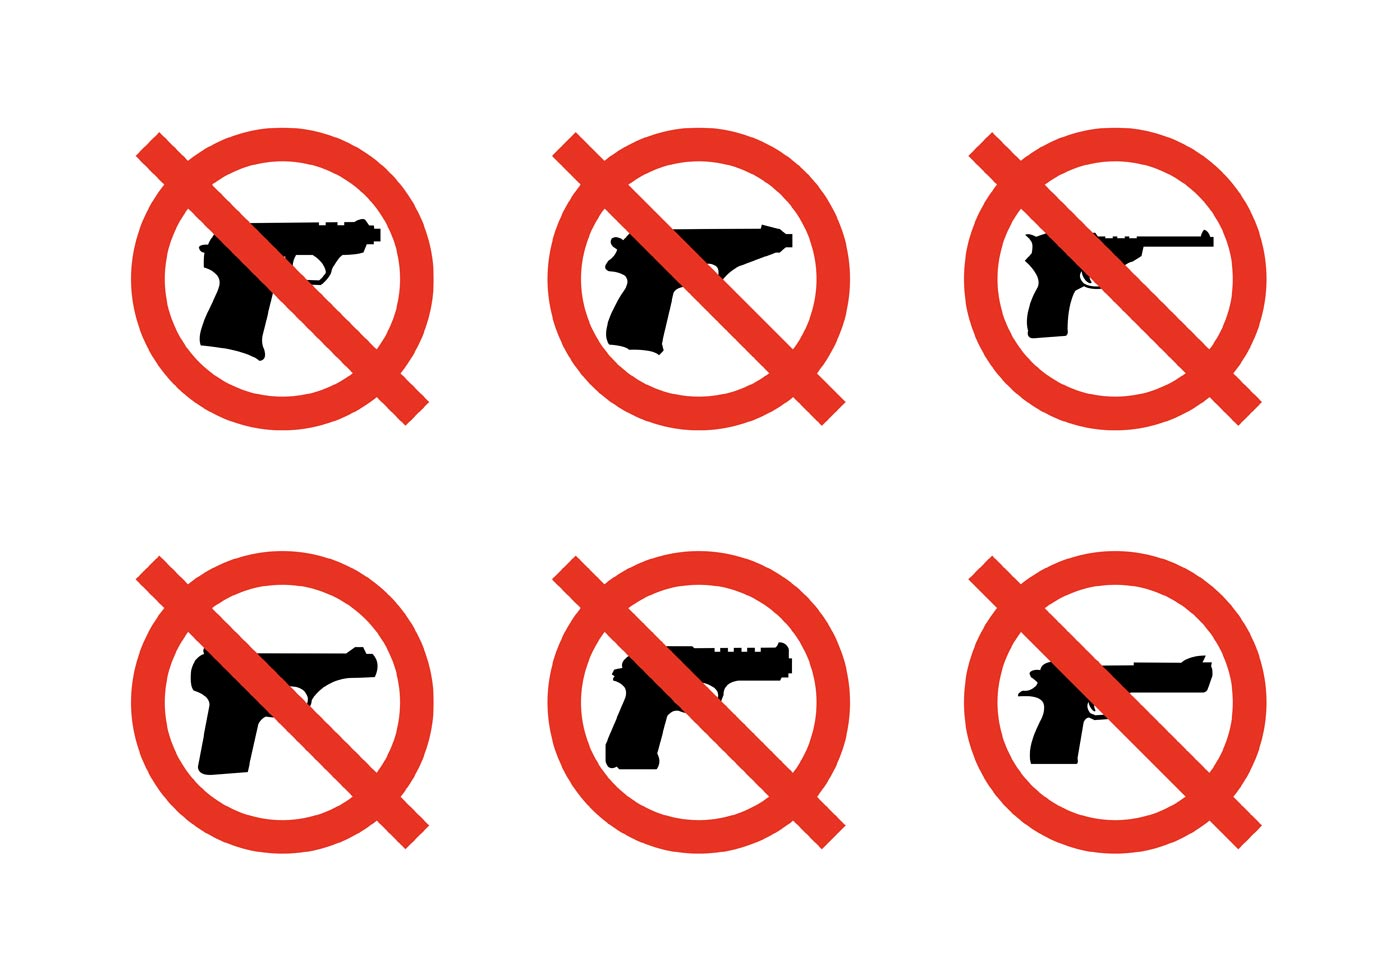 No weapons sign clipart jpg black and white library No Guns Allowed Free Vector Art - (9 Free Downloads) jpg black and white library